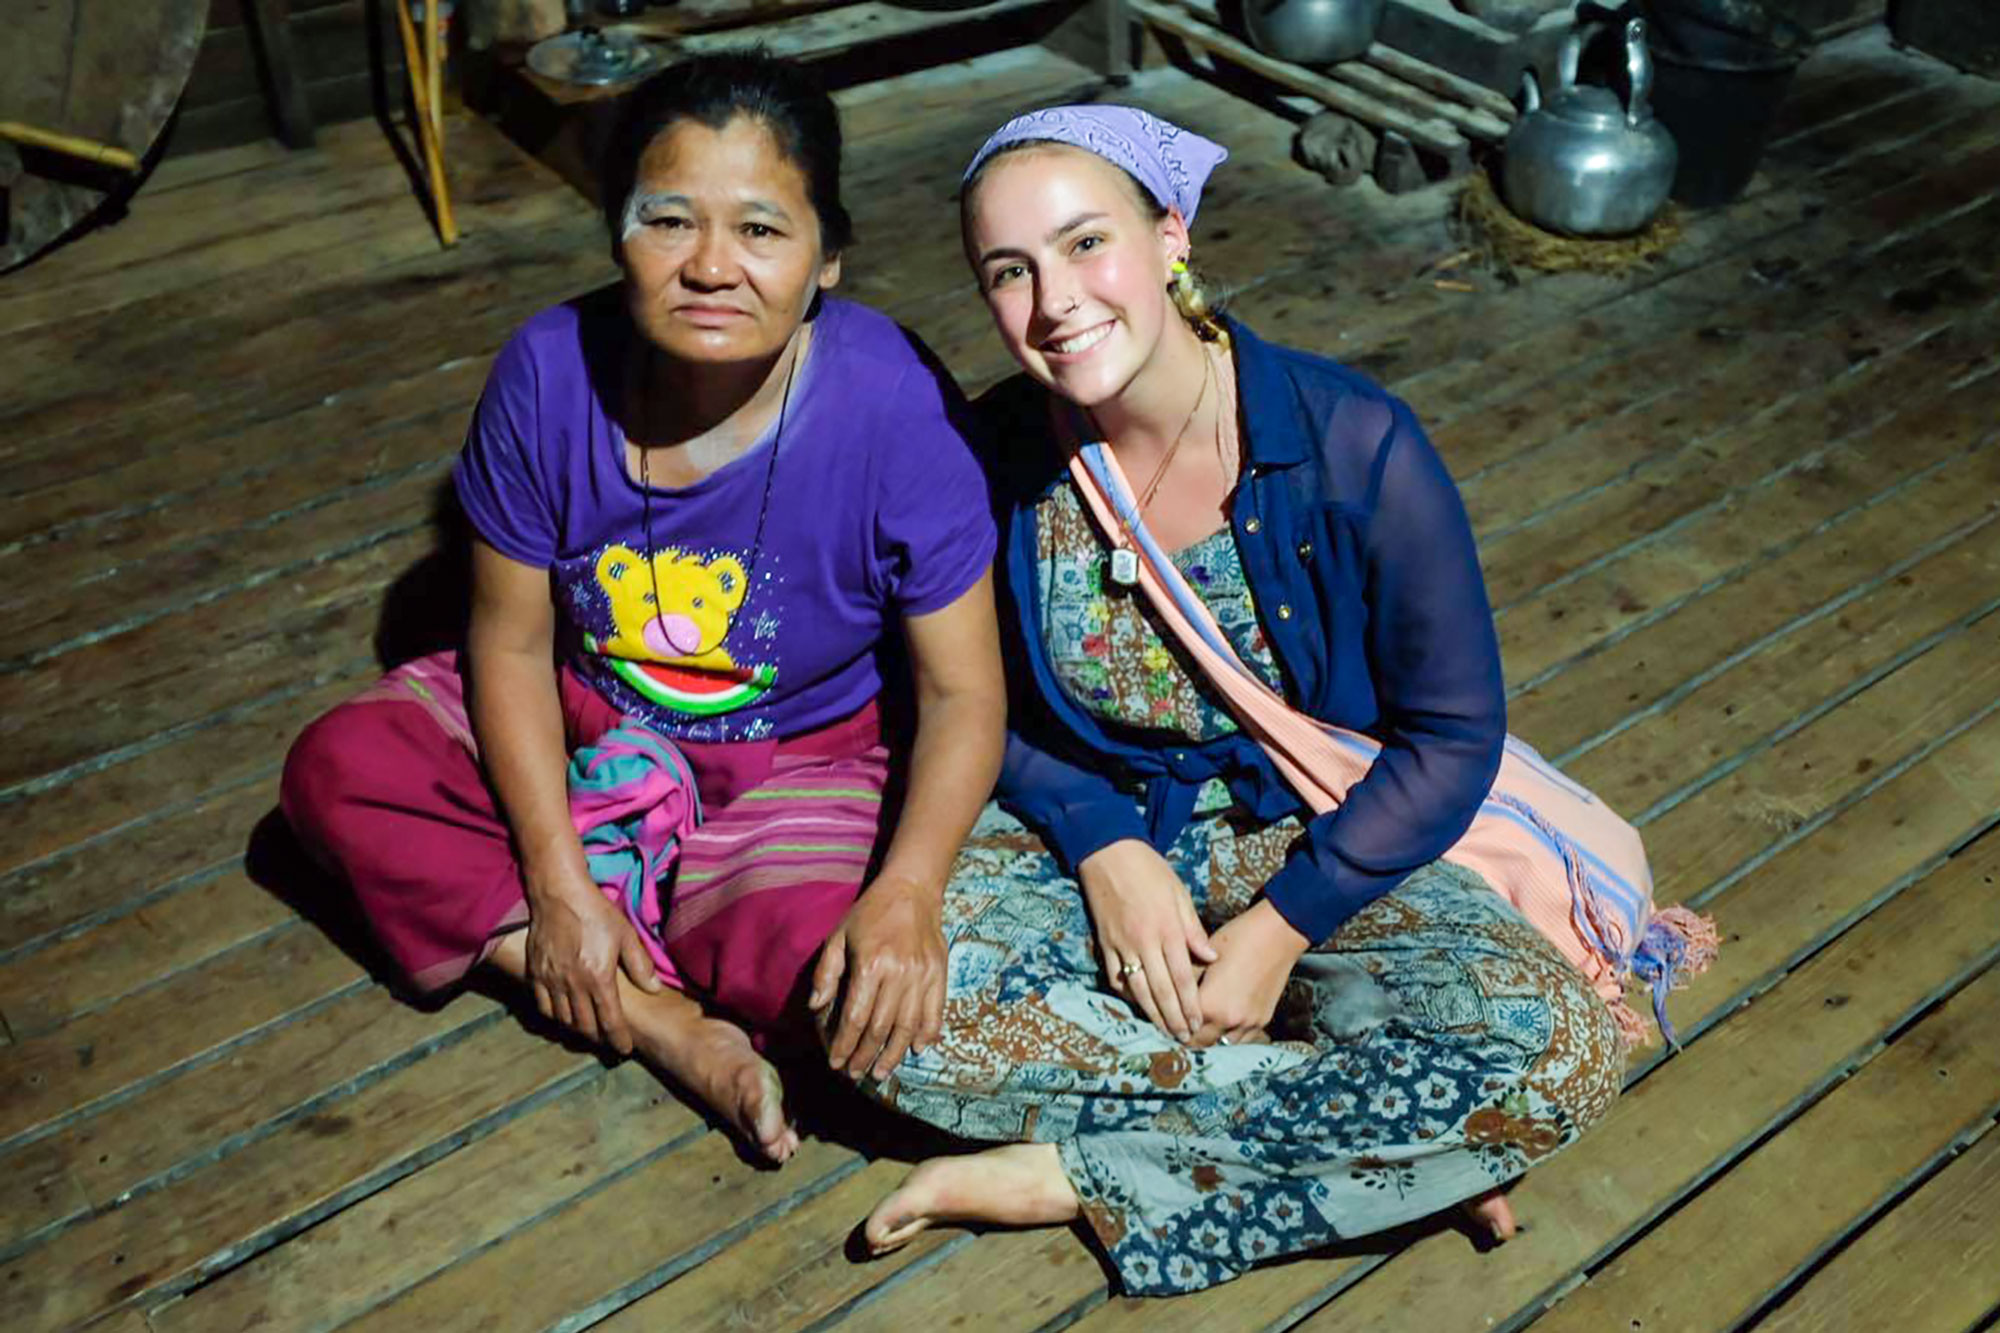 A UCEAP student and an older woman pose for a photo outdoors at night.